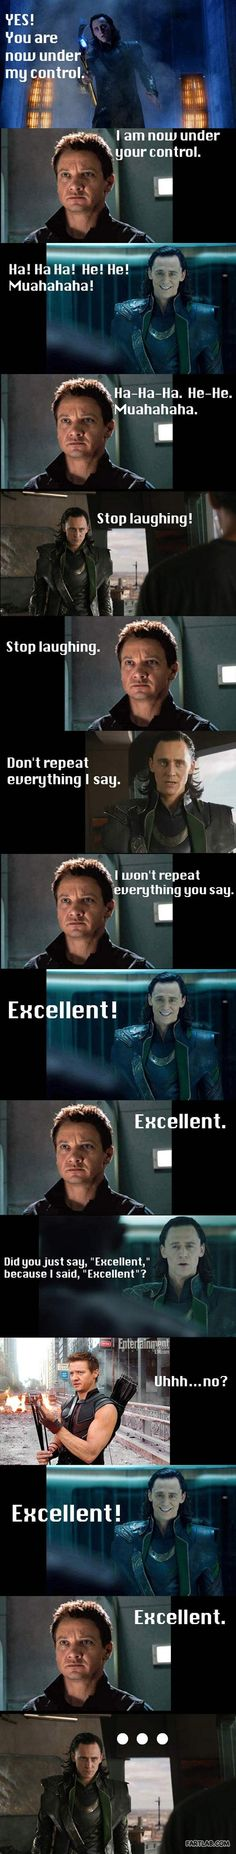 LOL!! Avengers and Meet the Robinsons crossover